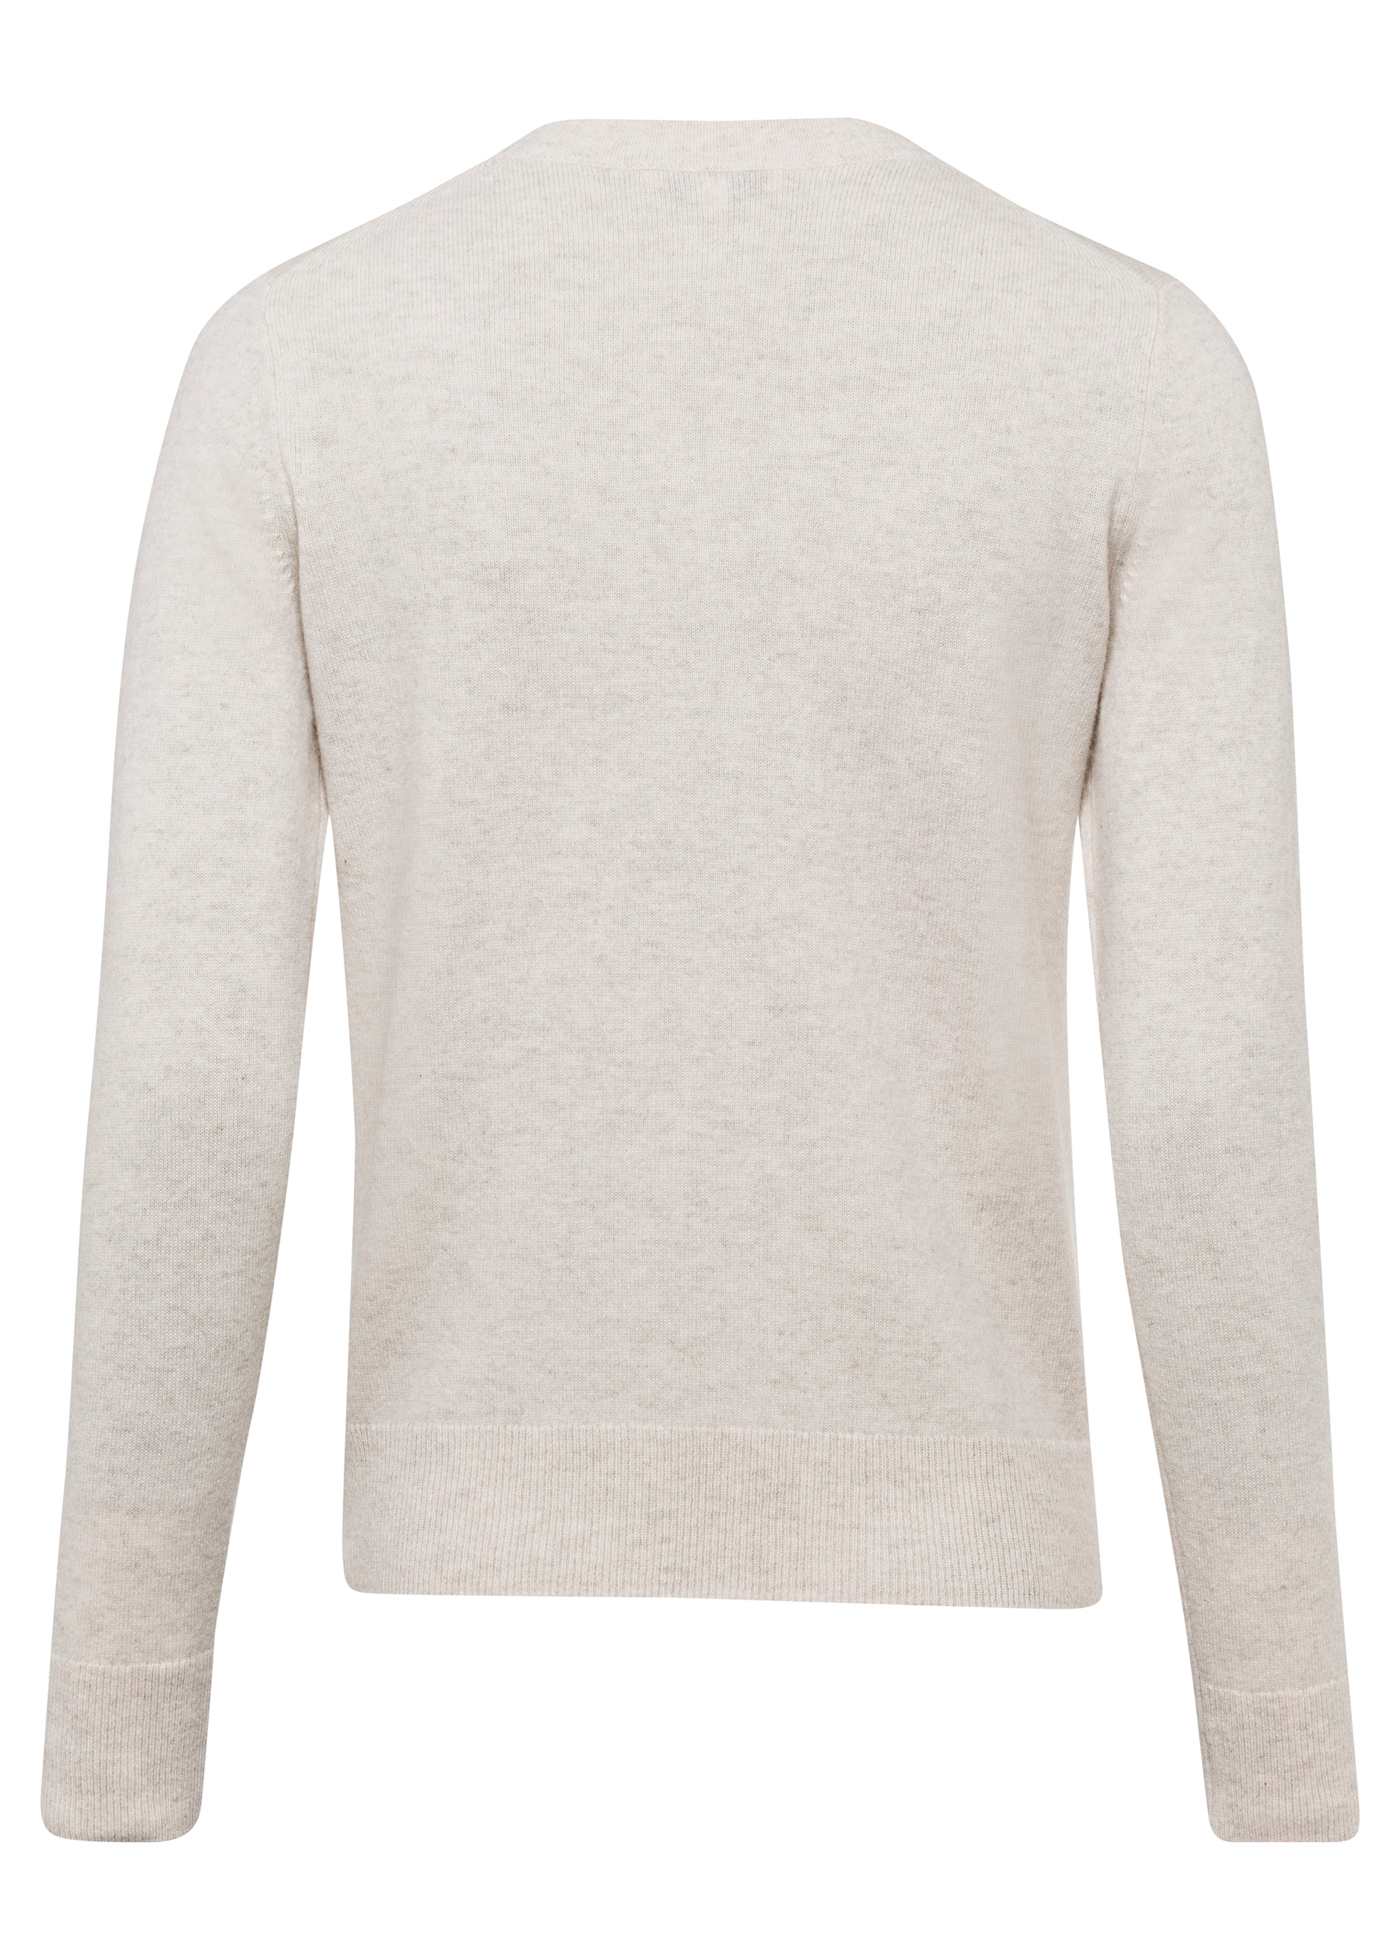 EASY FIT CREW NK / EASY FIT CREW NK image number 1